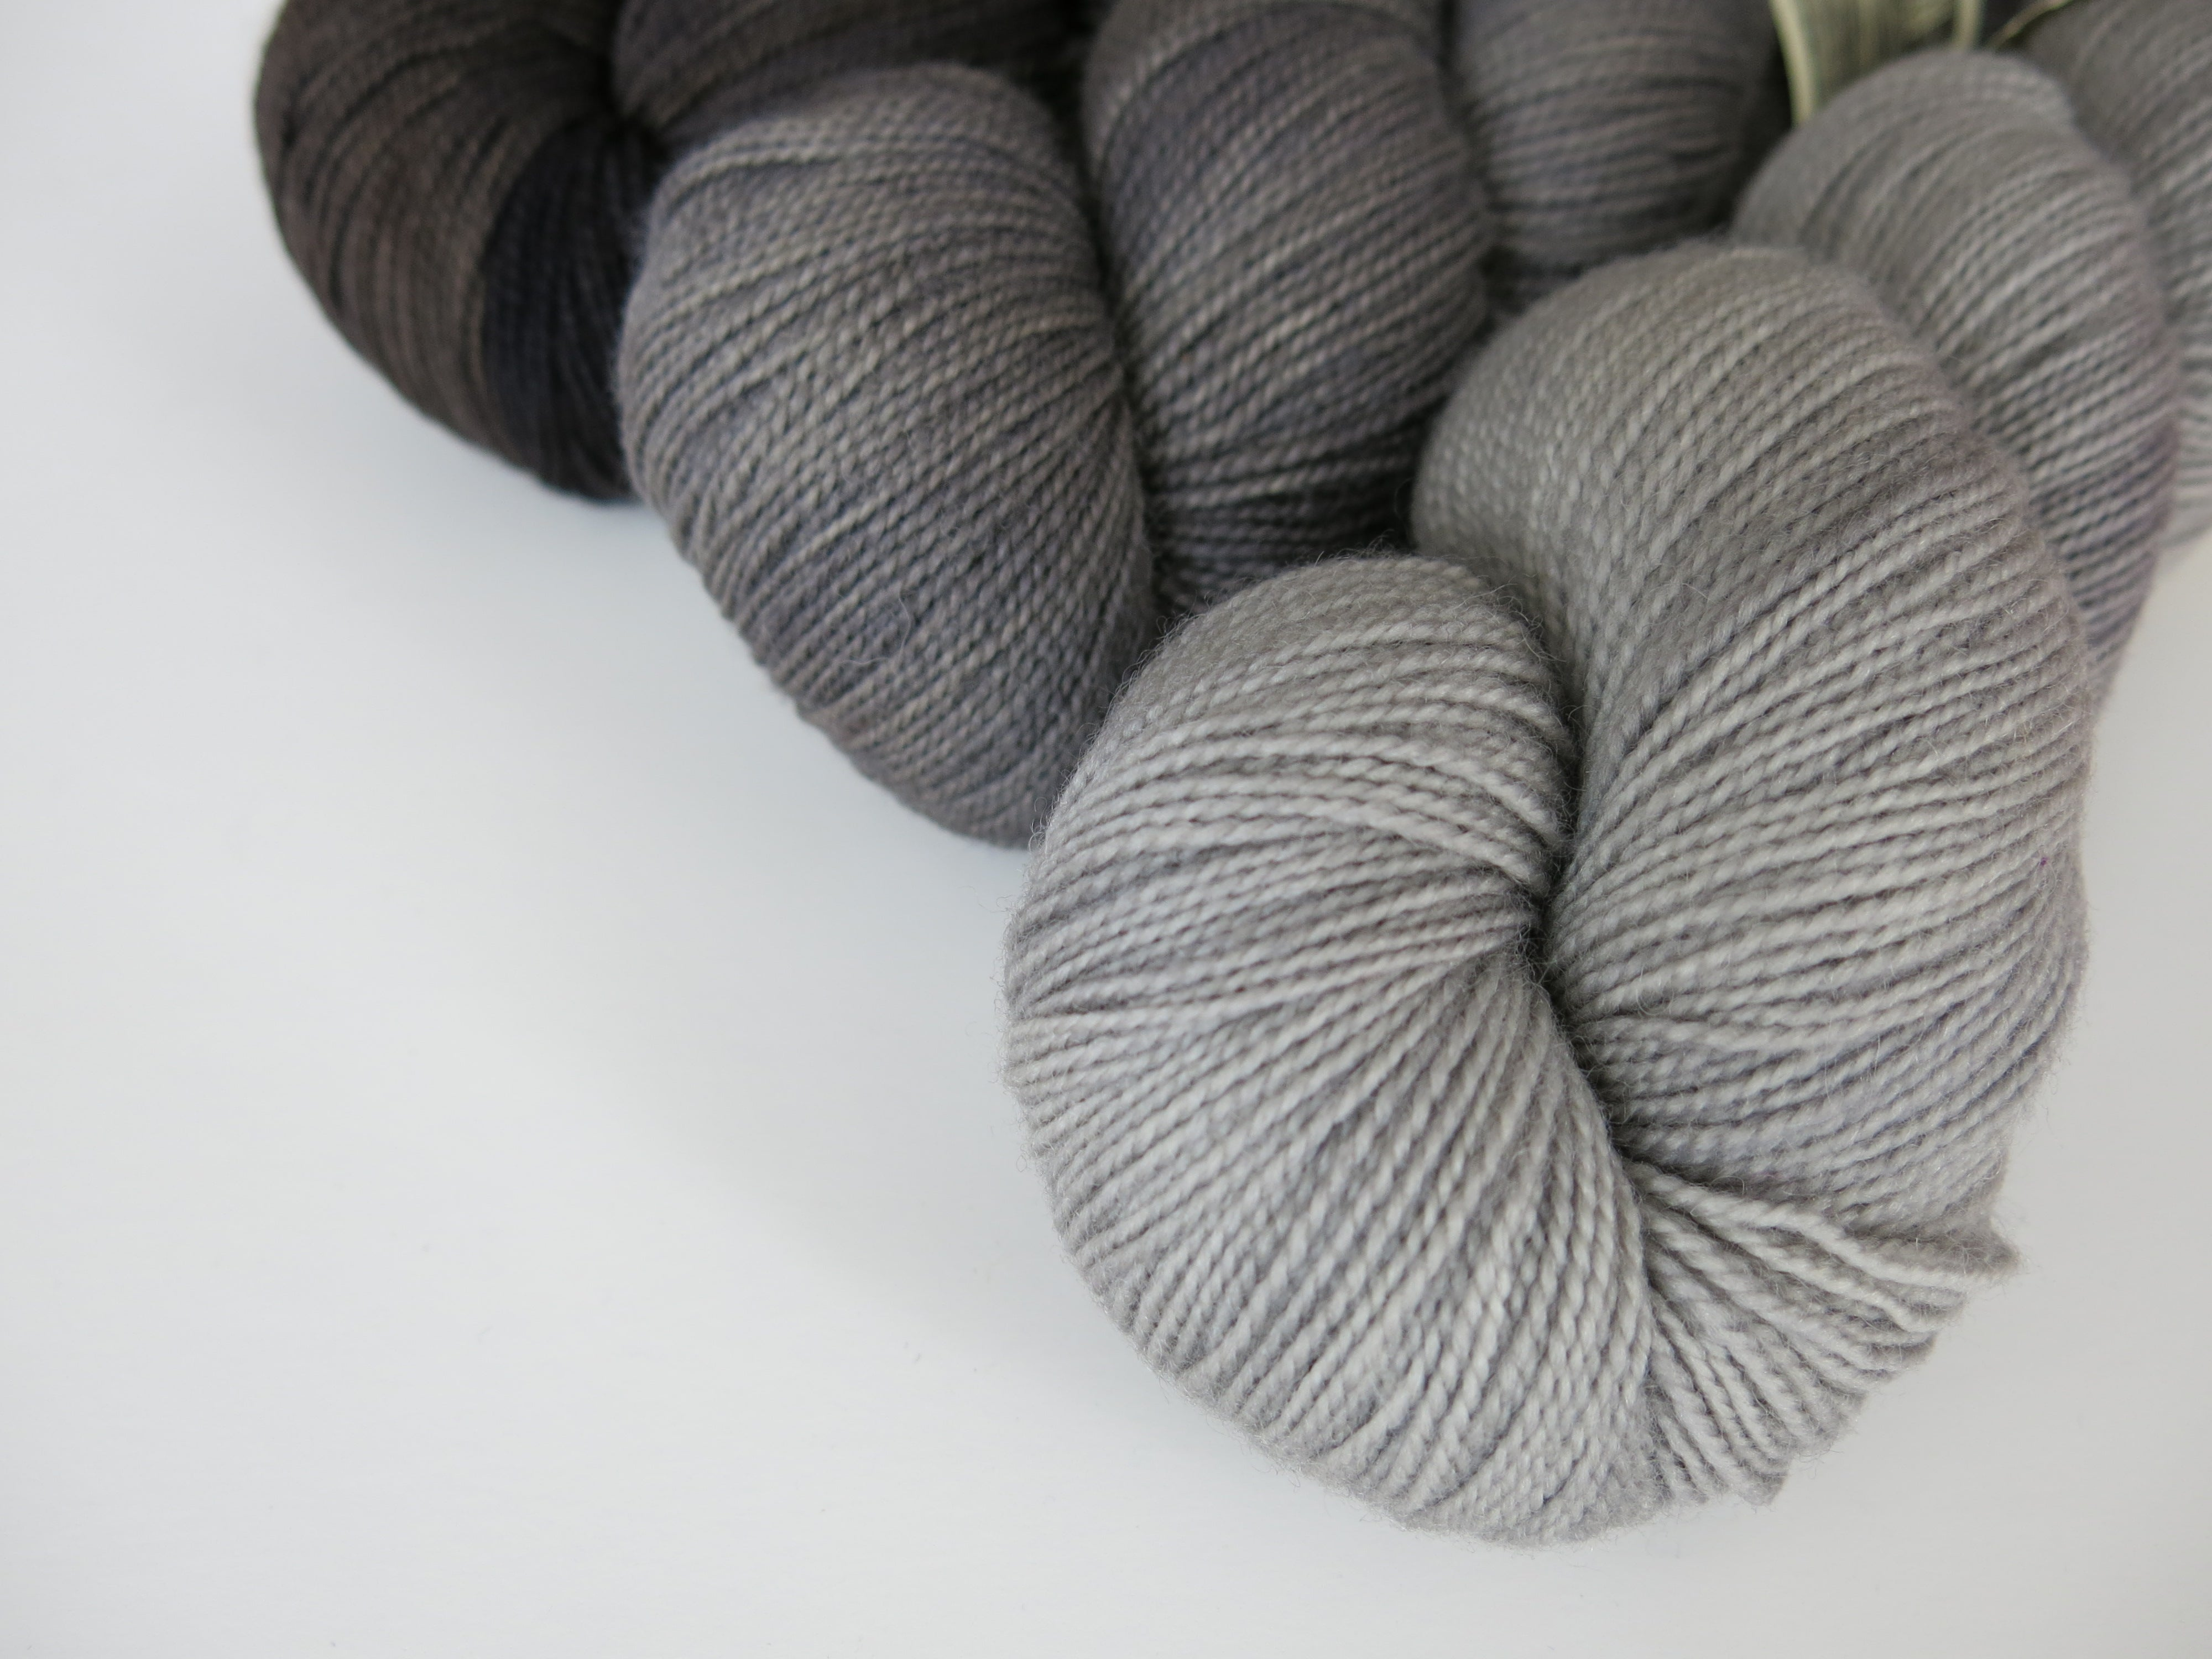 kettle dyed high twist british sock yarn set with grey and black